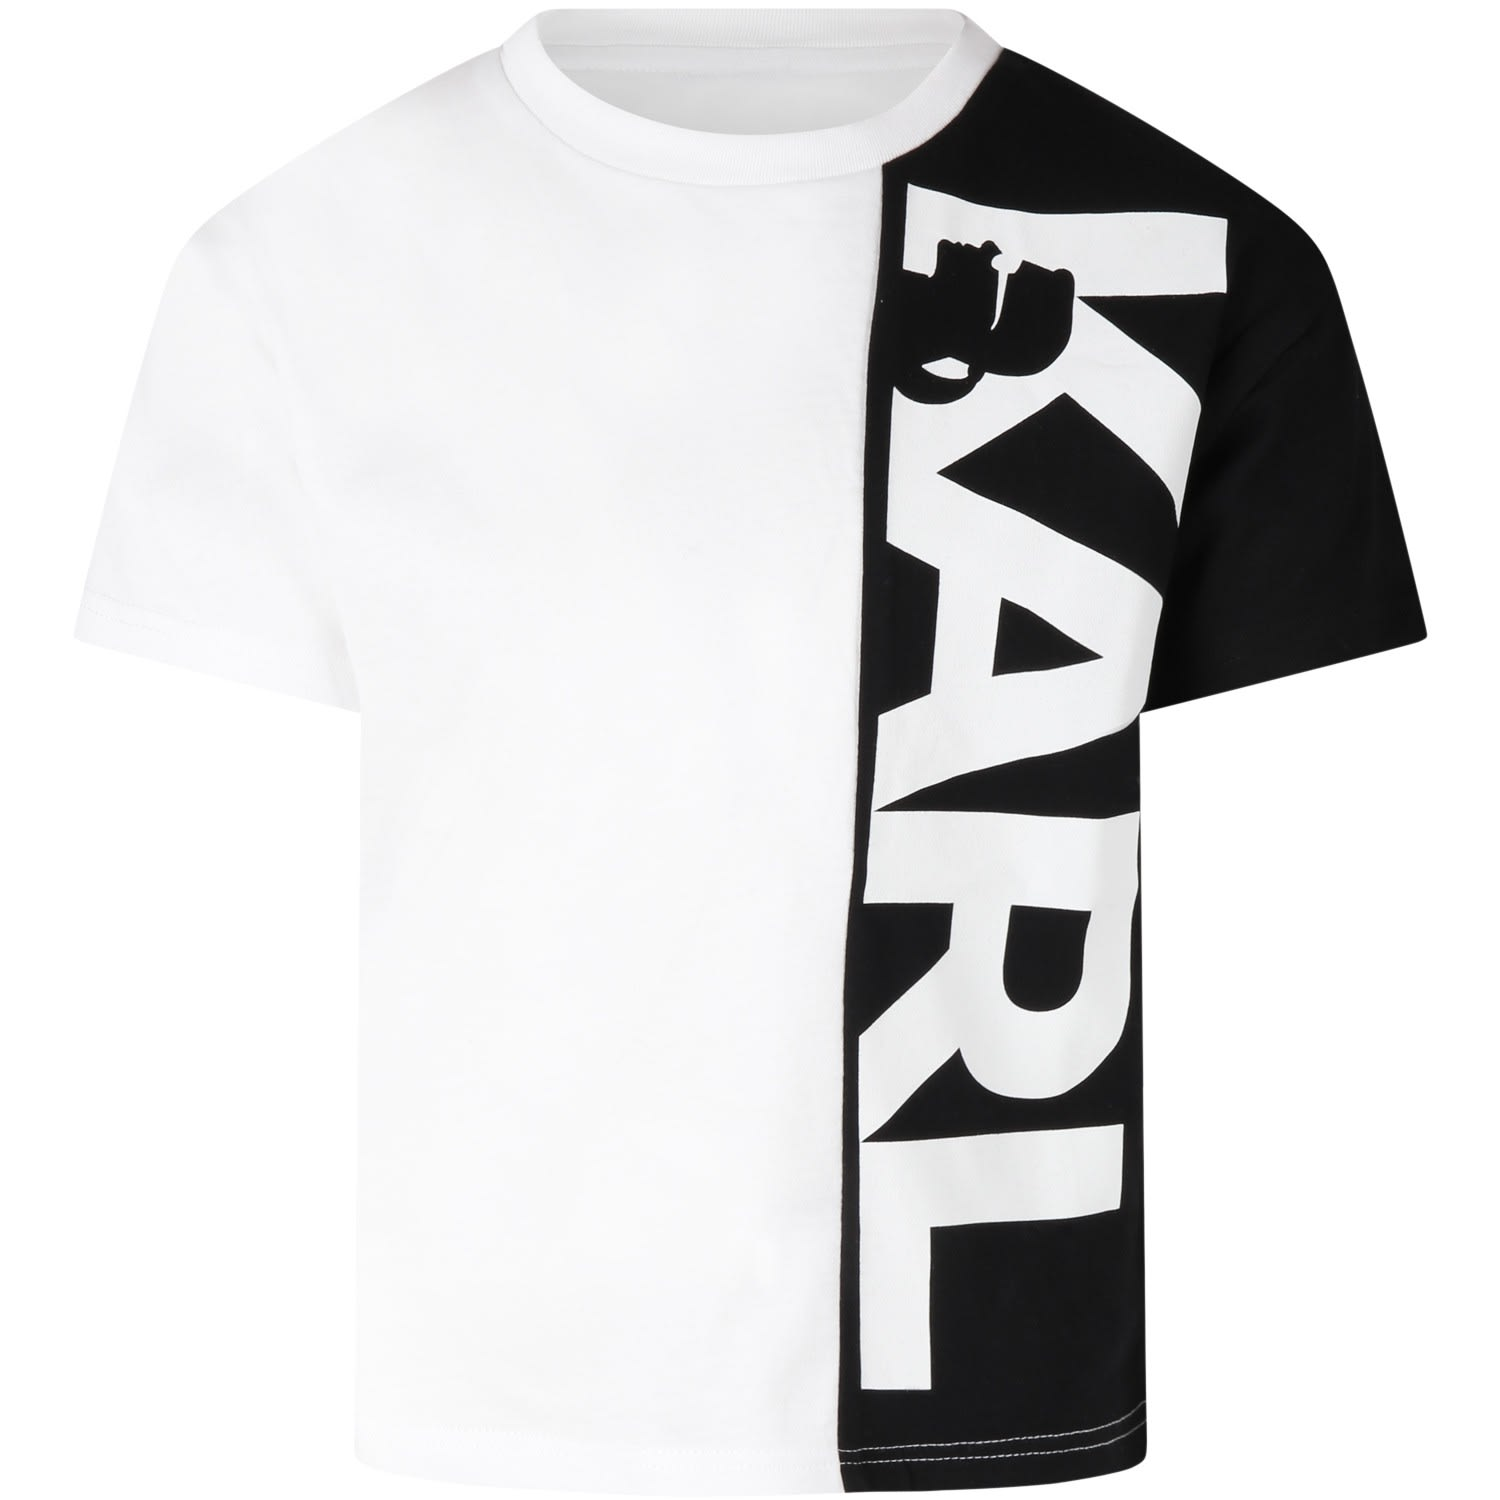 Karl Lagerfeld MULTICOLOR T-SHIRT FOR KIDS WITH LOGO